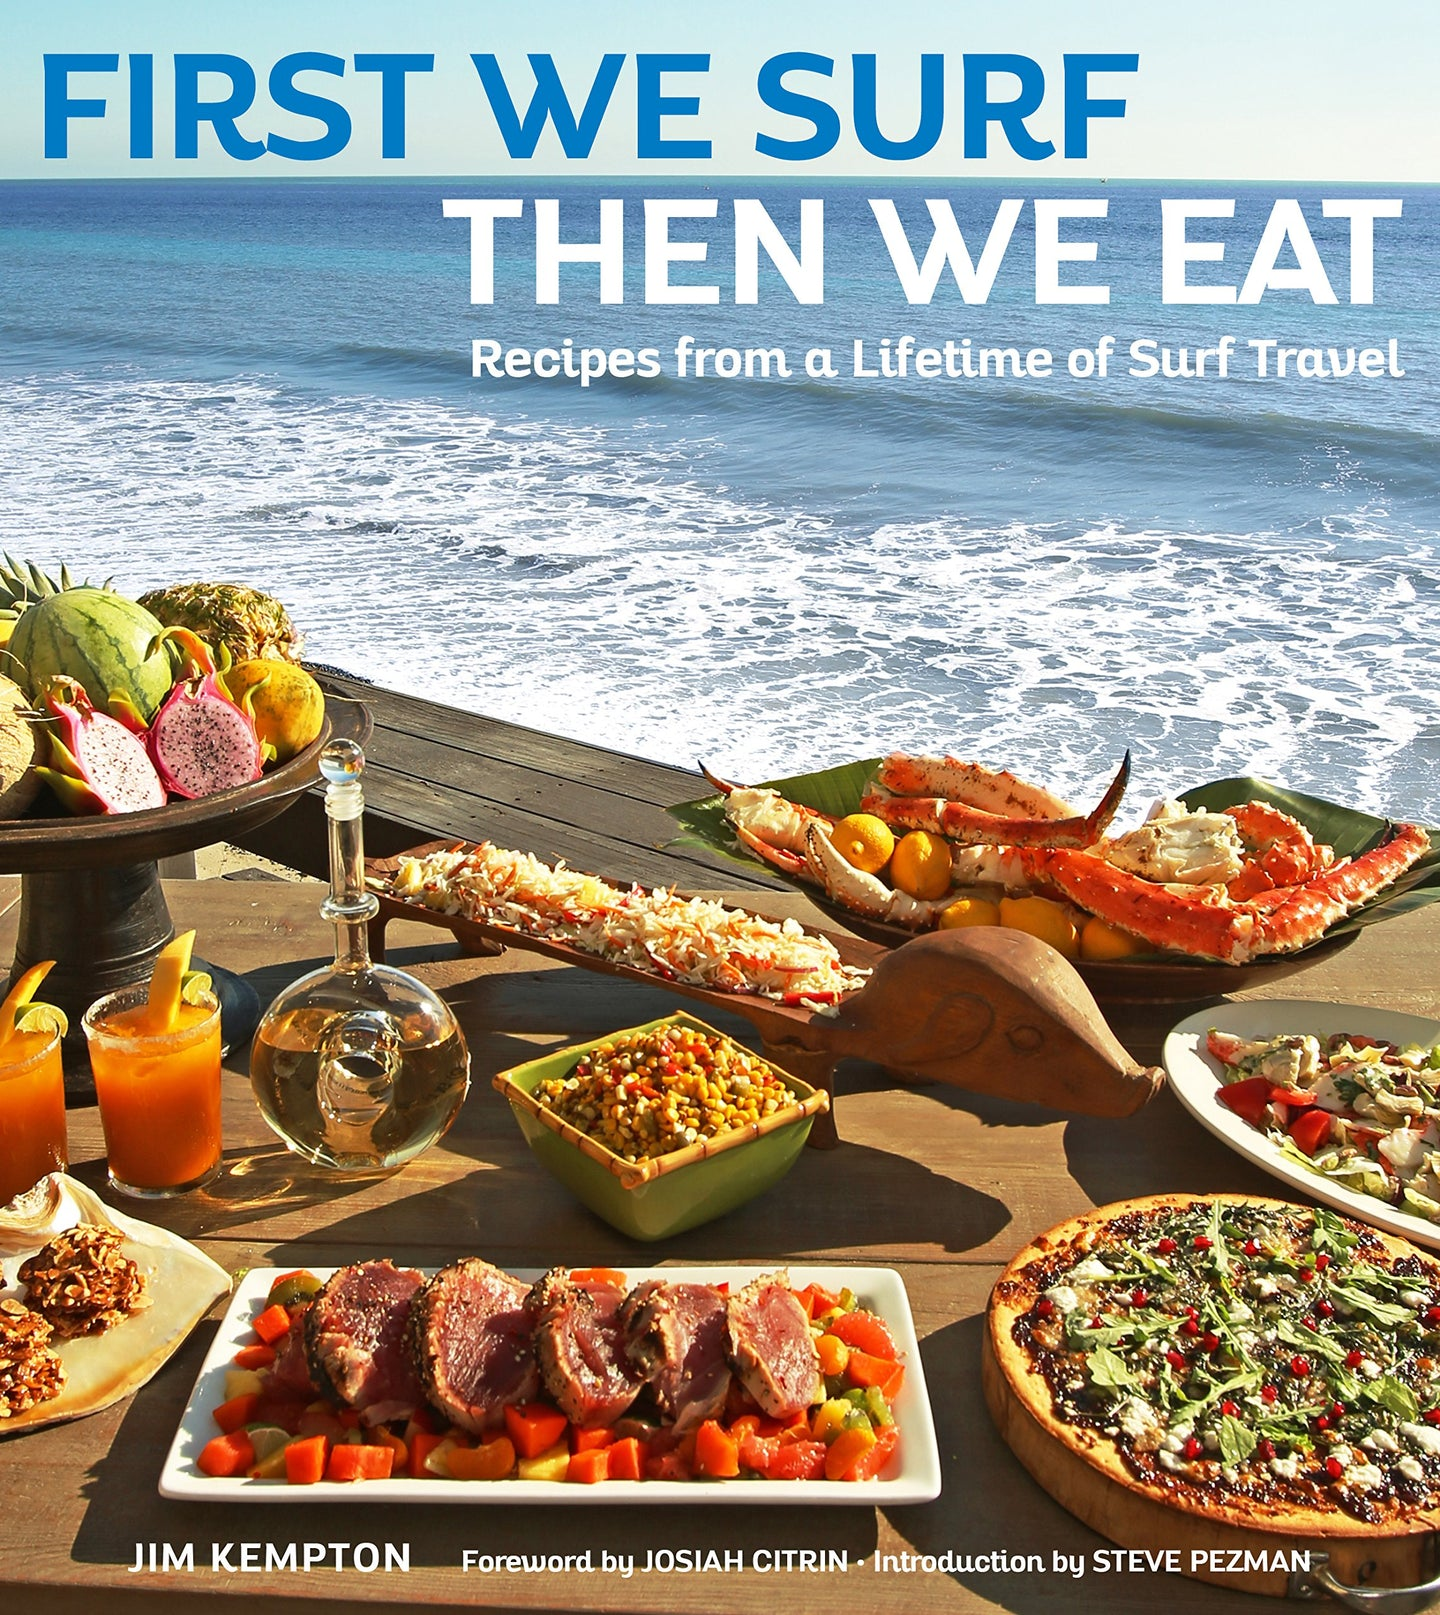 First We Surf Then We Eat